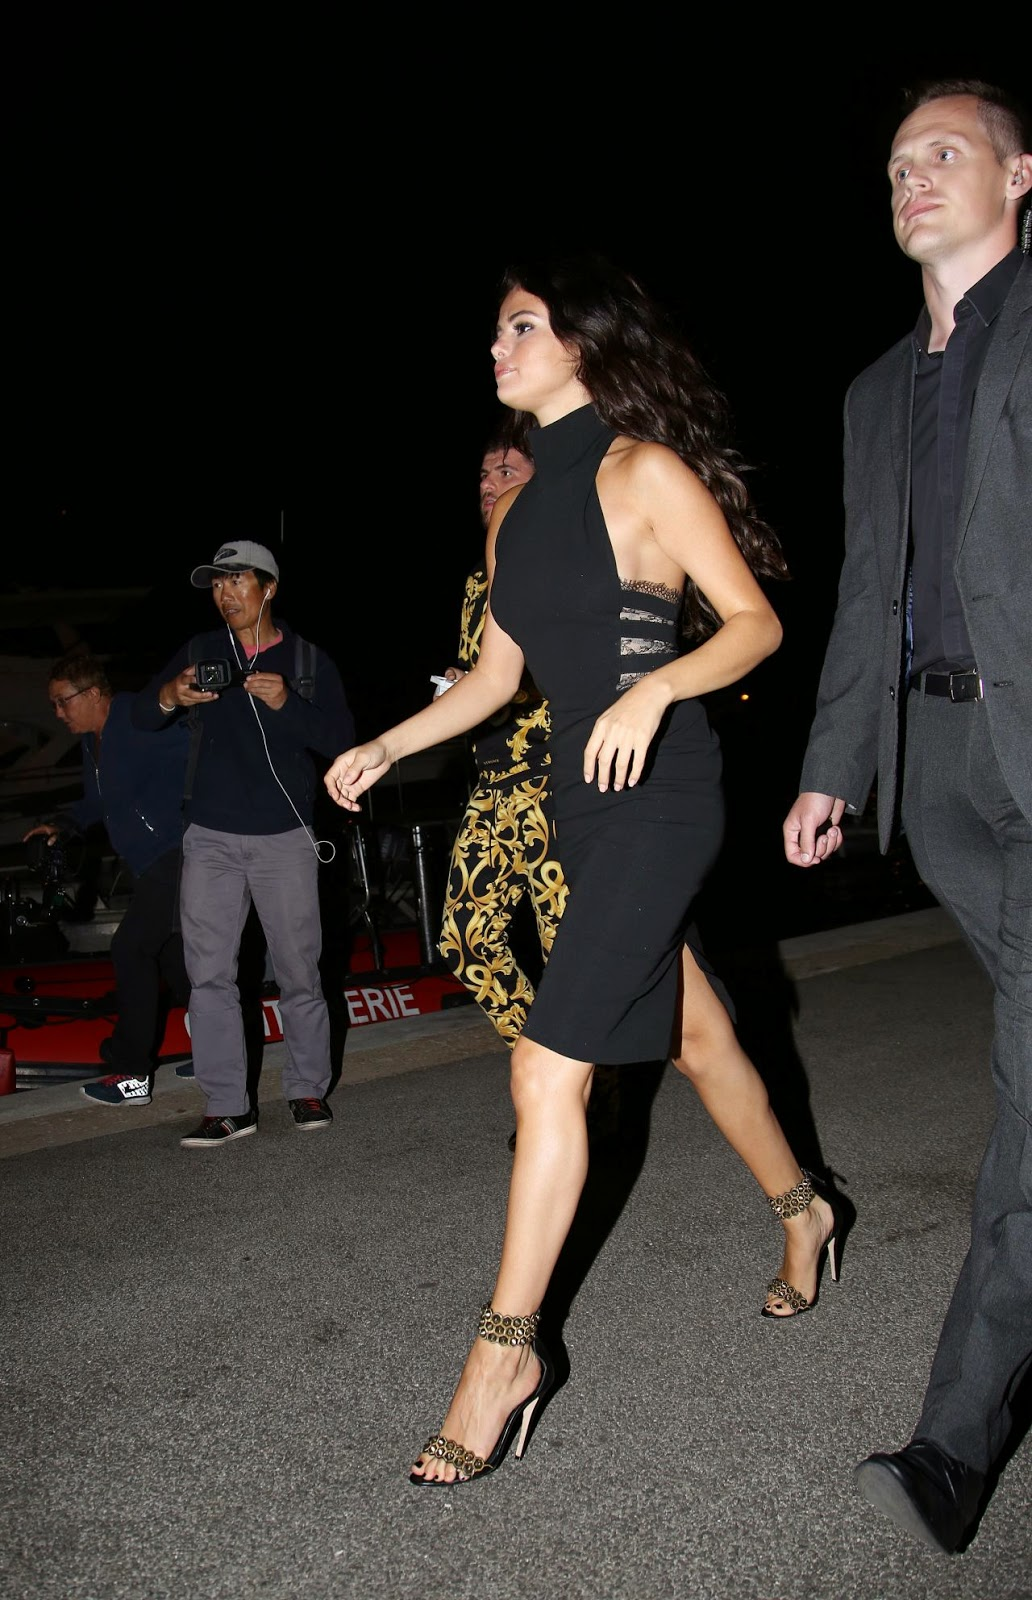 Selena Gomez in Saint-Tropez July 2014